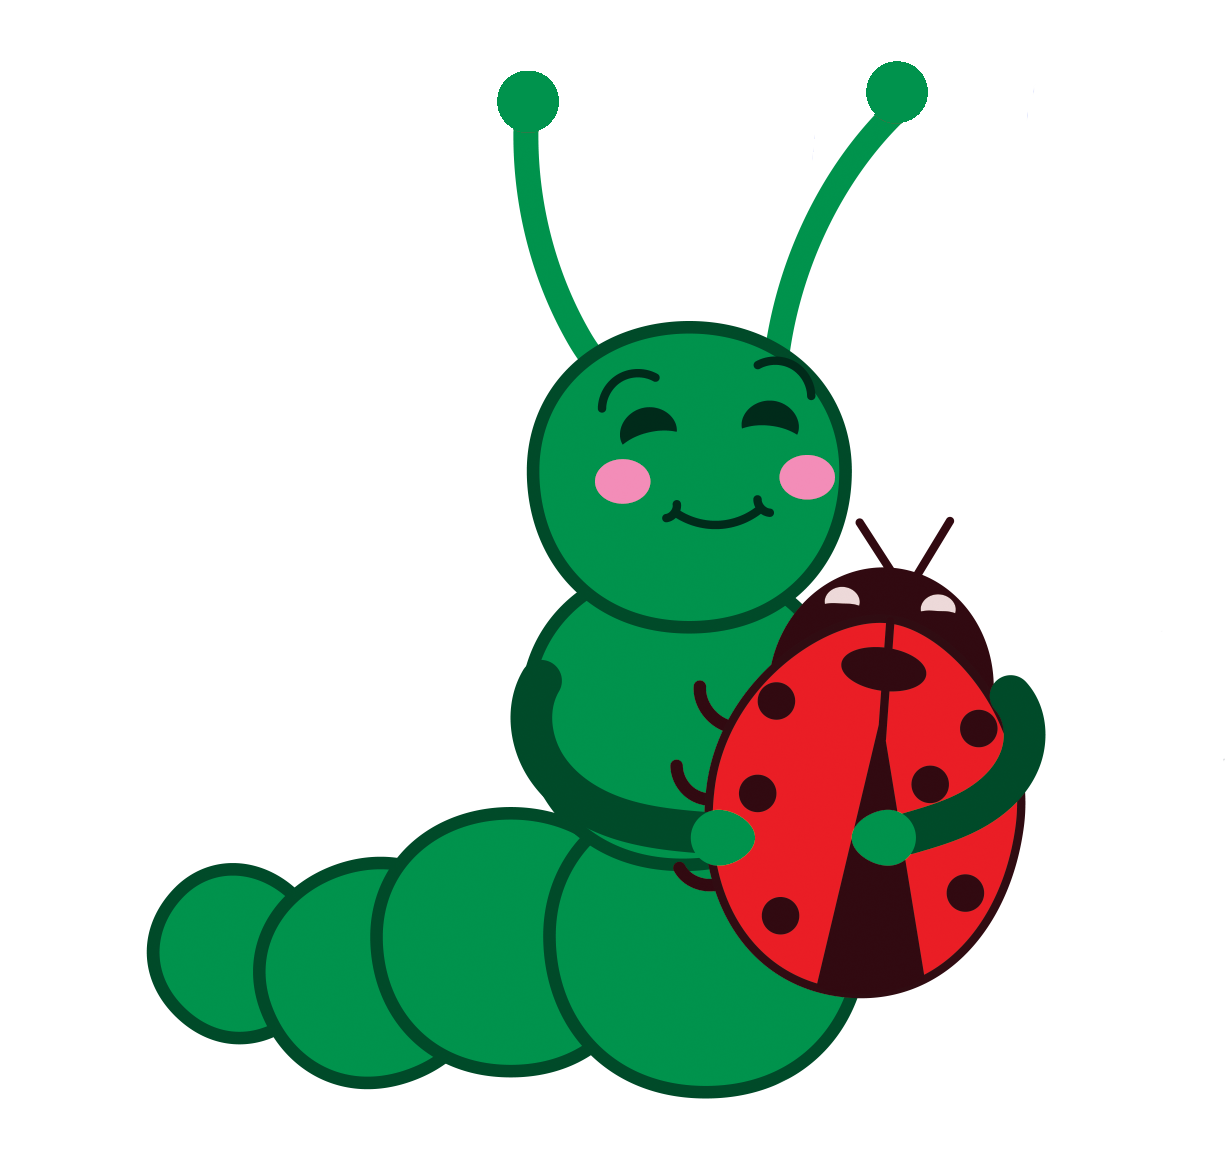 Hug clipart bug. A music gift certificate